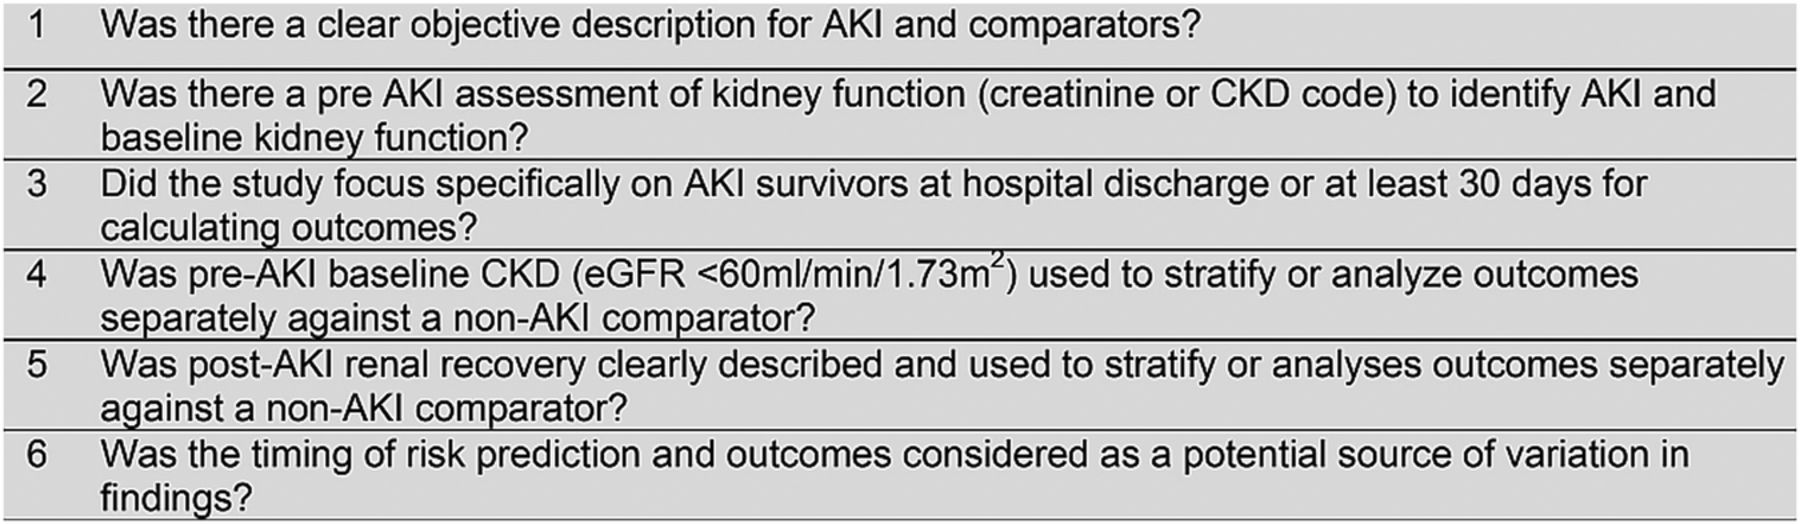 Long-term prognosis after acute kidney injury (AKI): what is the